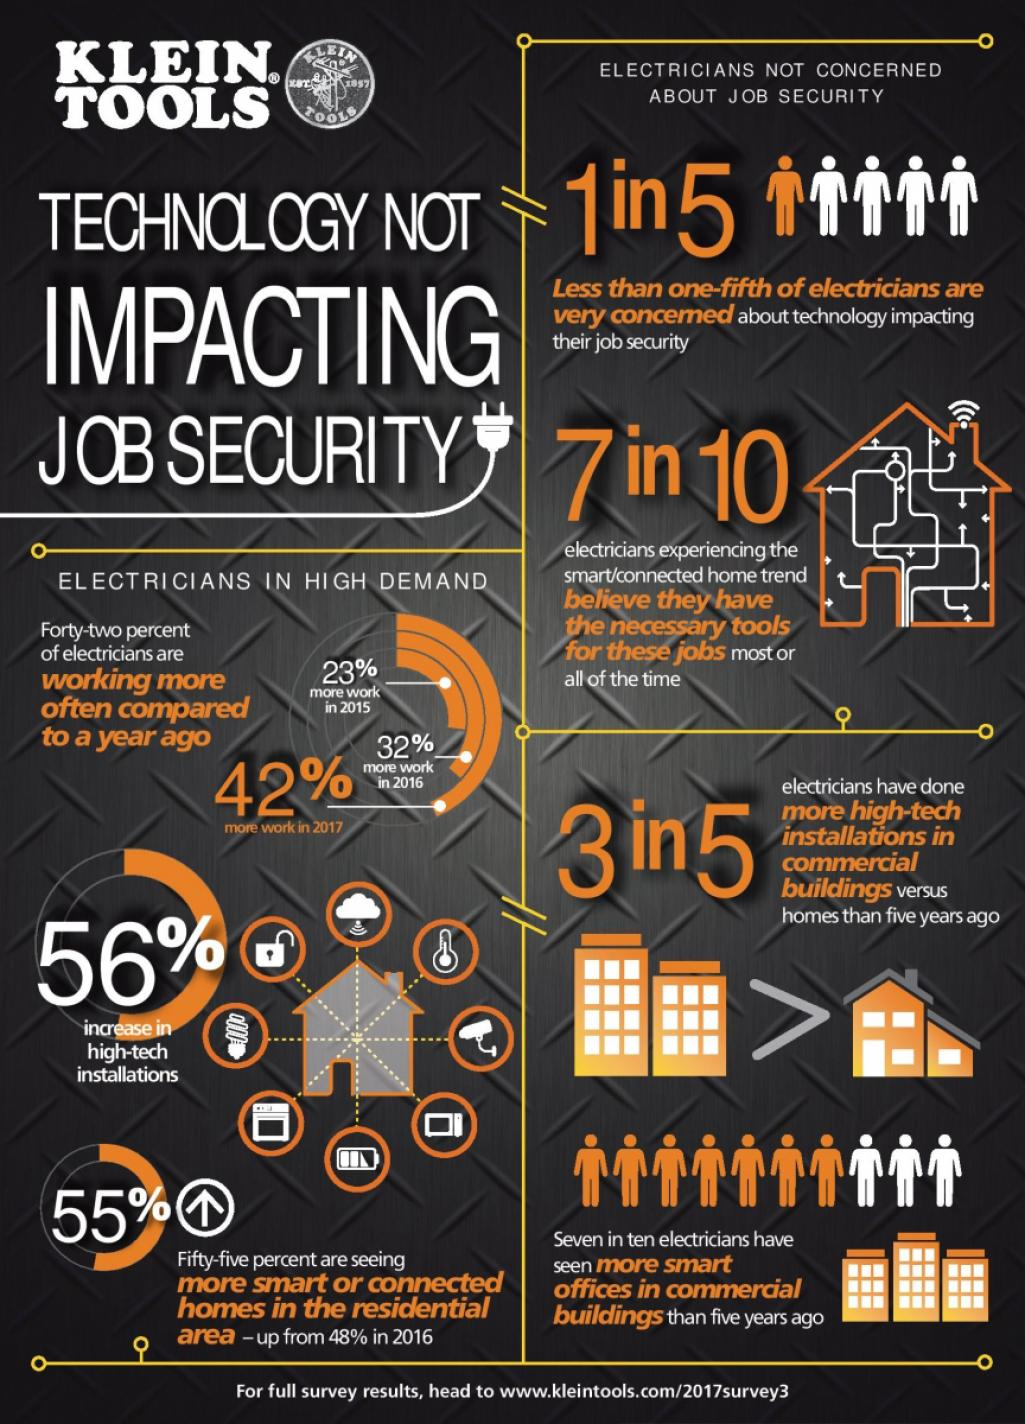 Survey Suggests Electricians Are Not Concerned About Technology